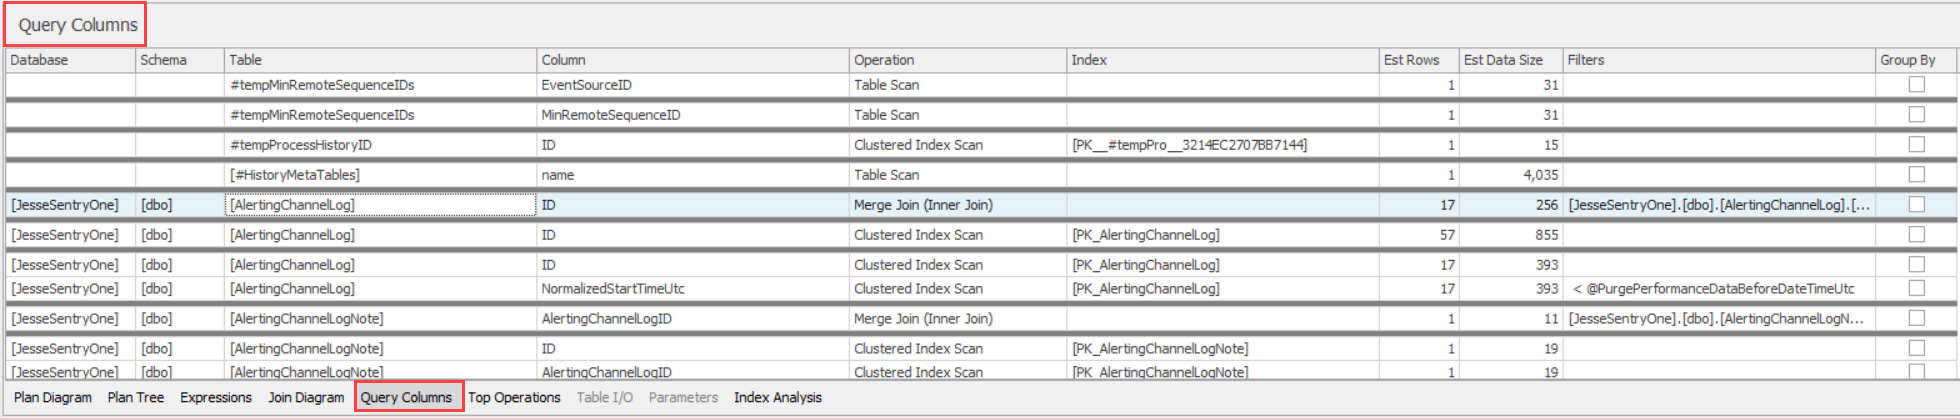 SentryOne Plan Explorer Query Columns